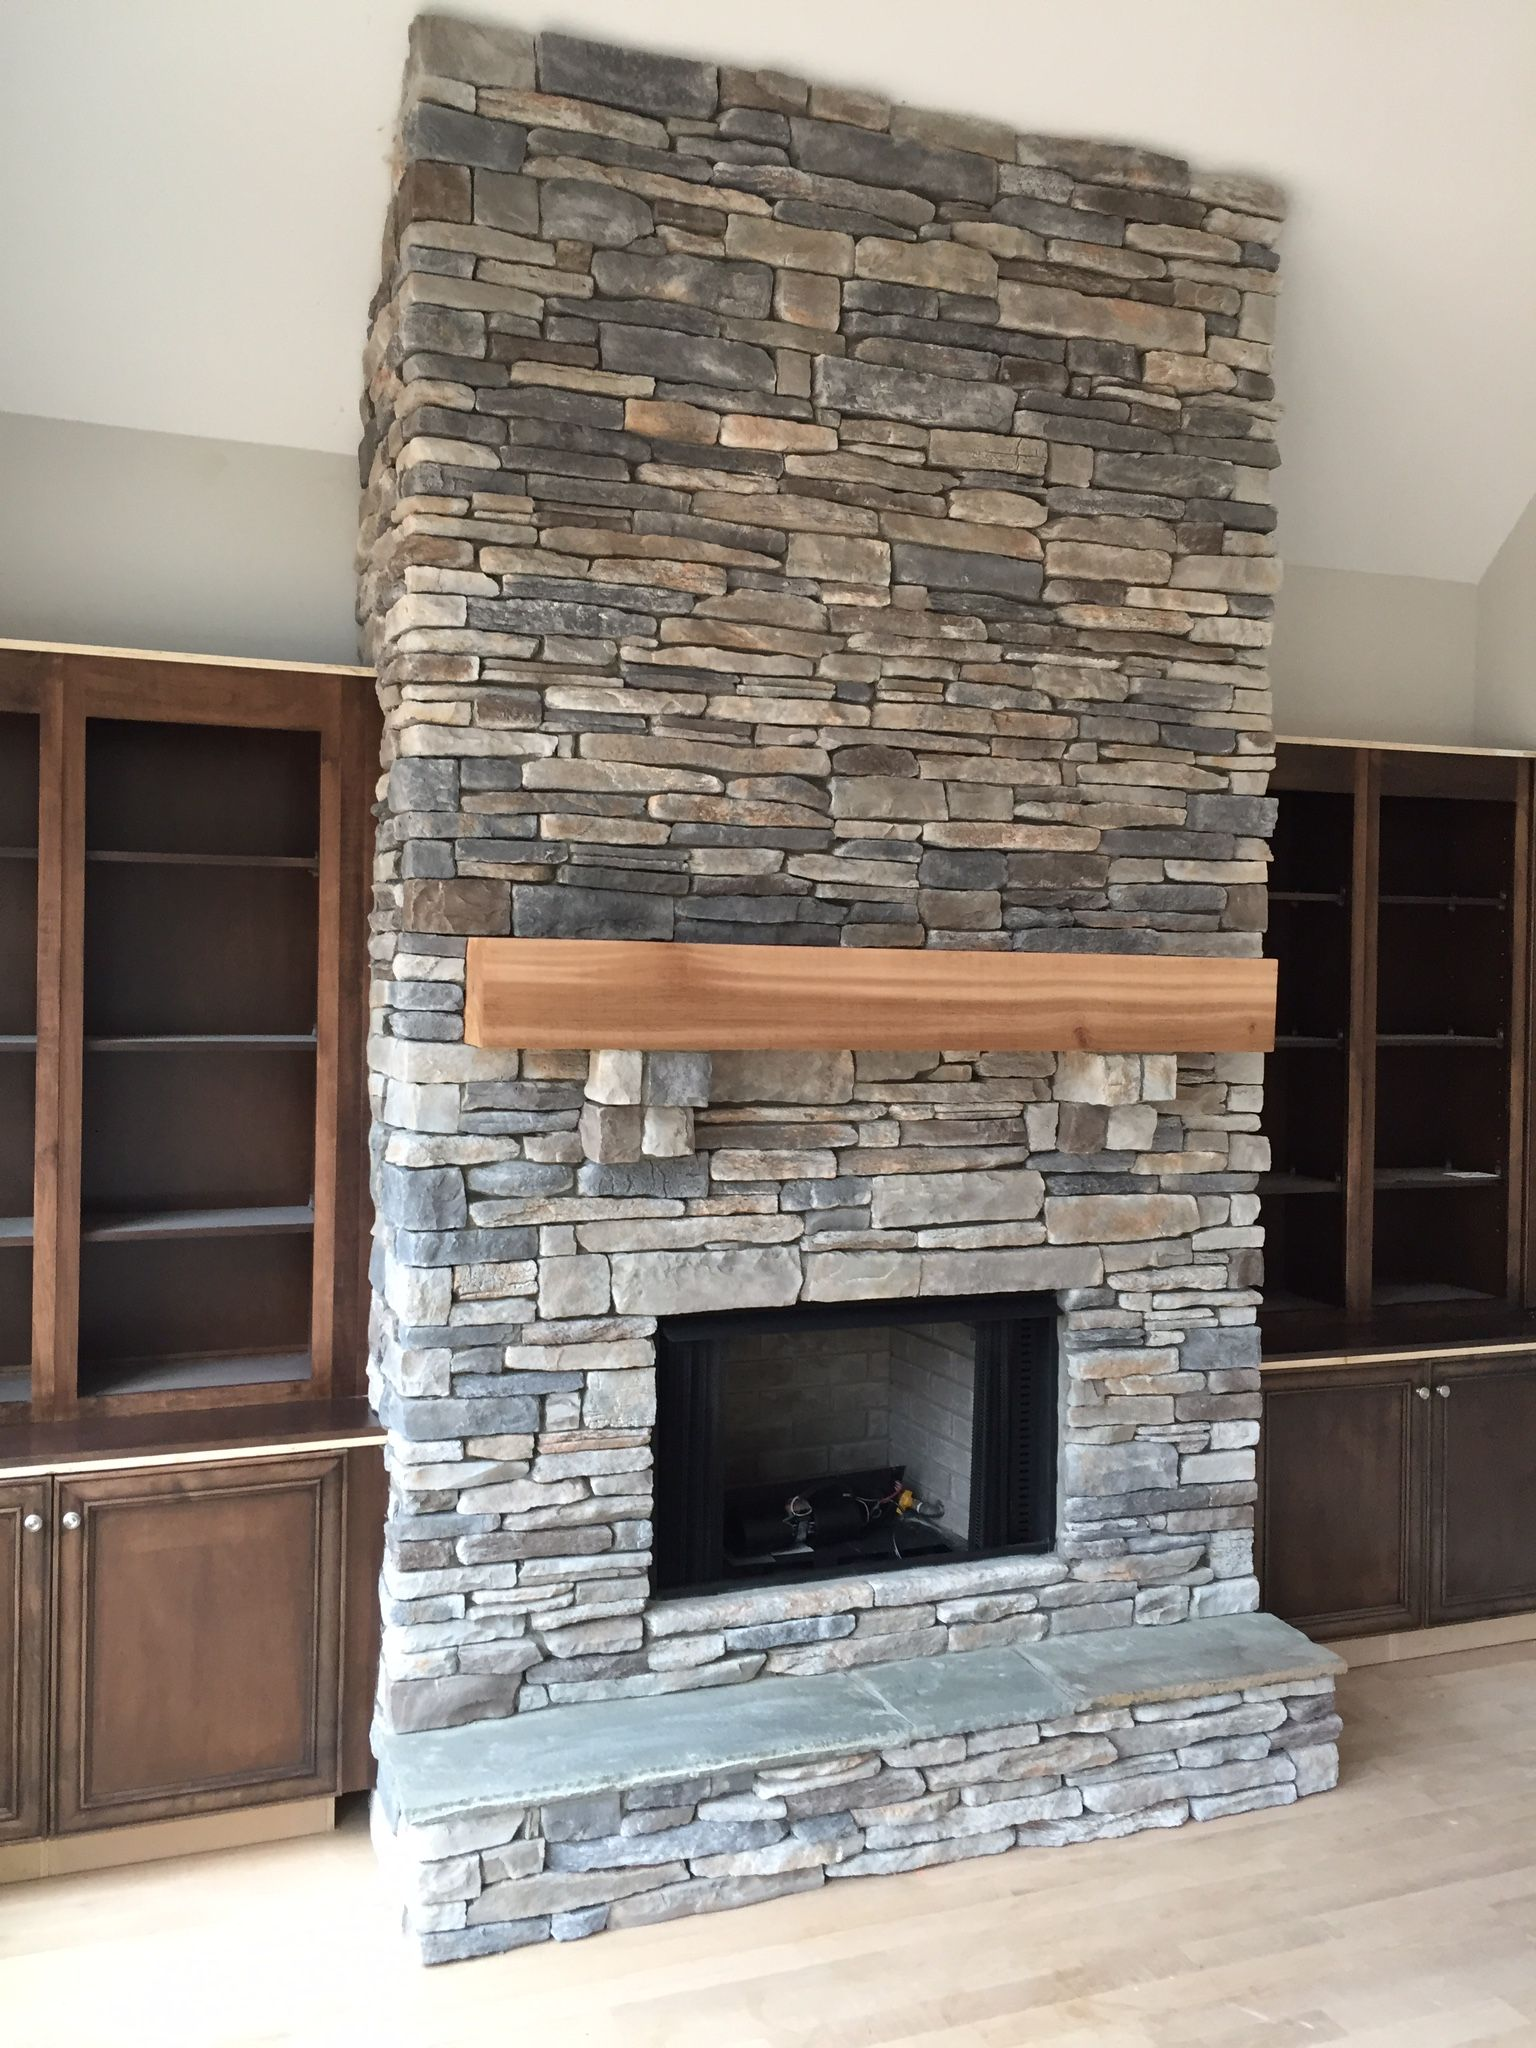 Installing Cultured Stone Fireplace Time For A Fireplace That Rocks Custom Design And Install